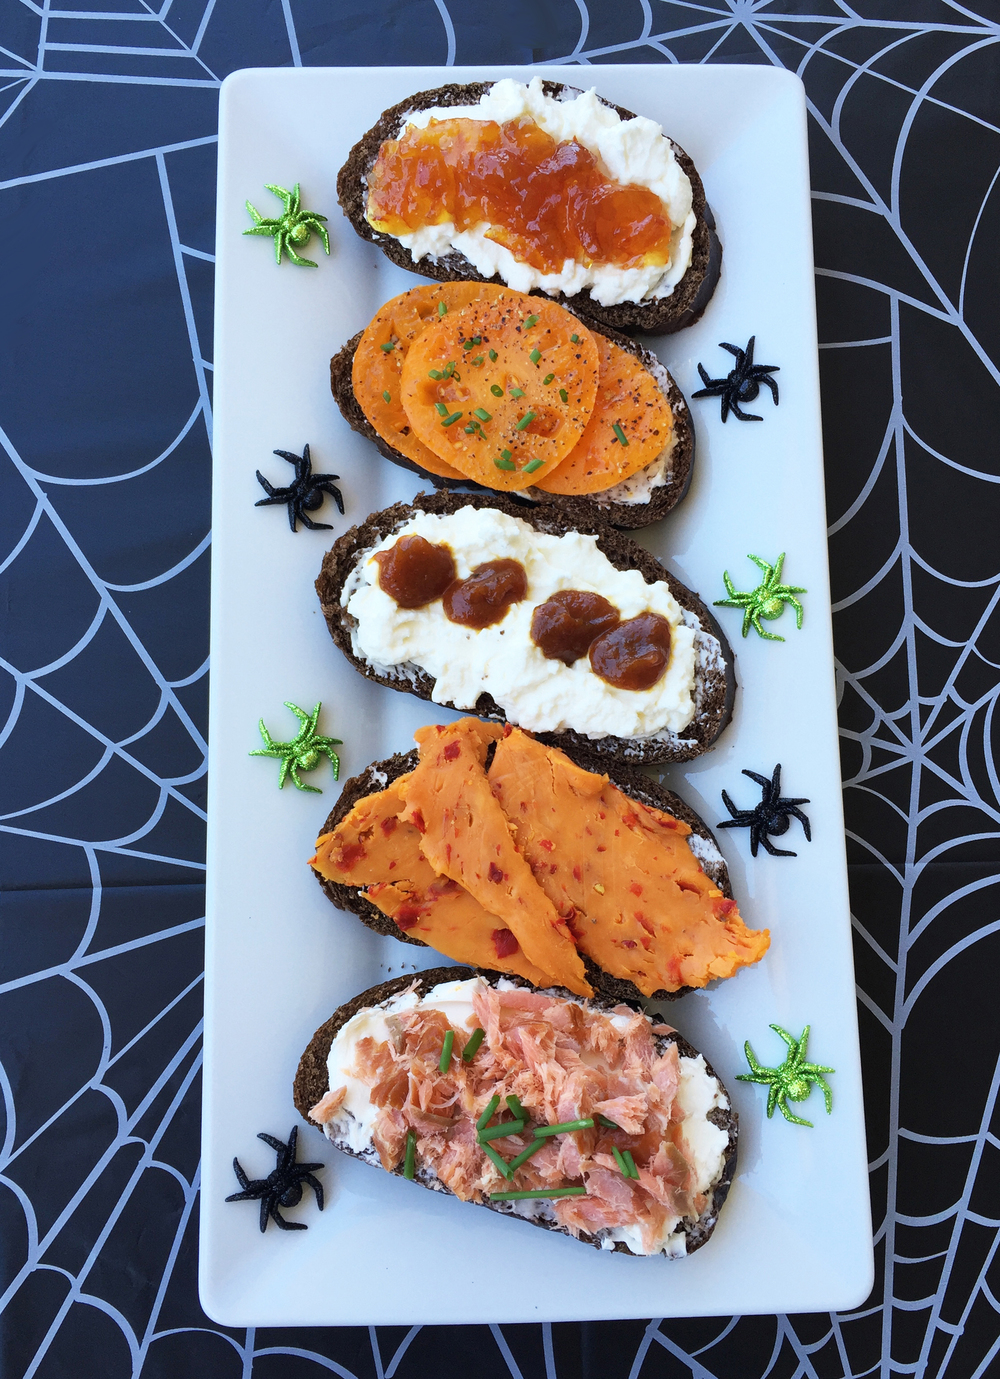 top to bottom : Ricotta and orange marmalade; Orange heirloom tomato slices with sweet butter and chives; Ricotta and pumpkin butter; Cheddar cheese with red jalapeno peppers; Flakes of hot smoked salmon with crème fraîche and chives